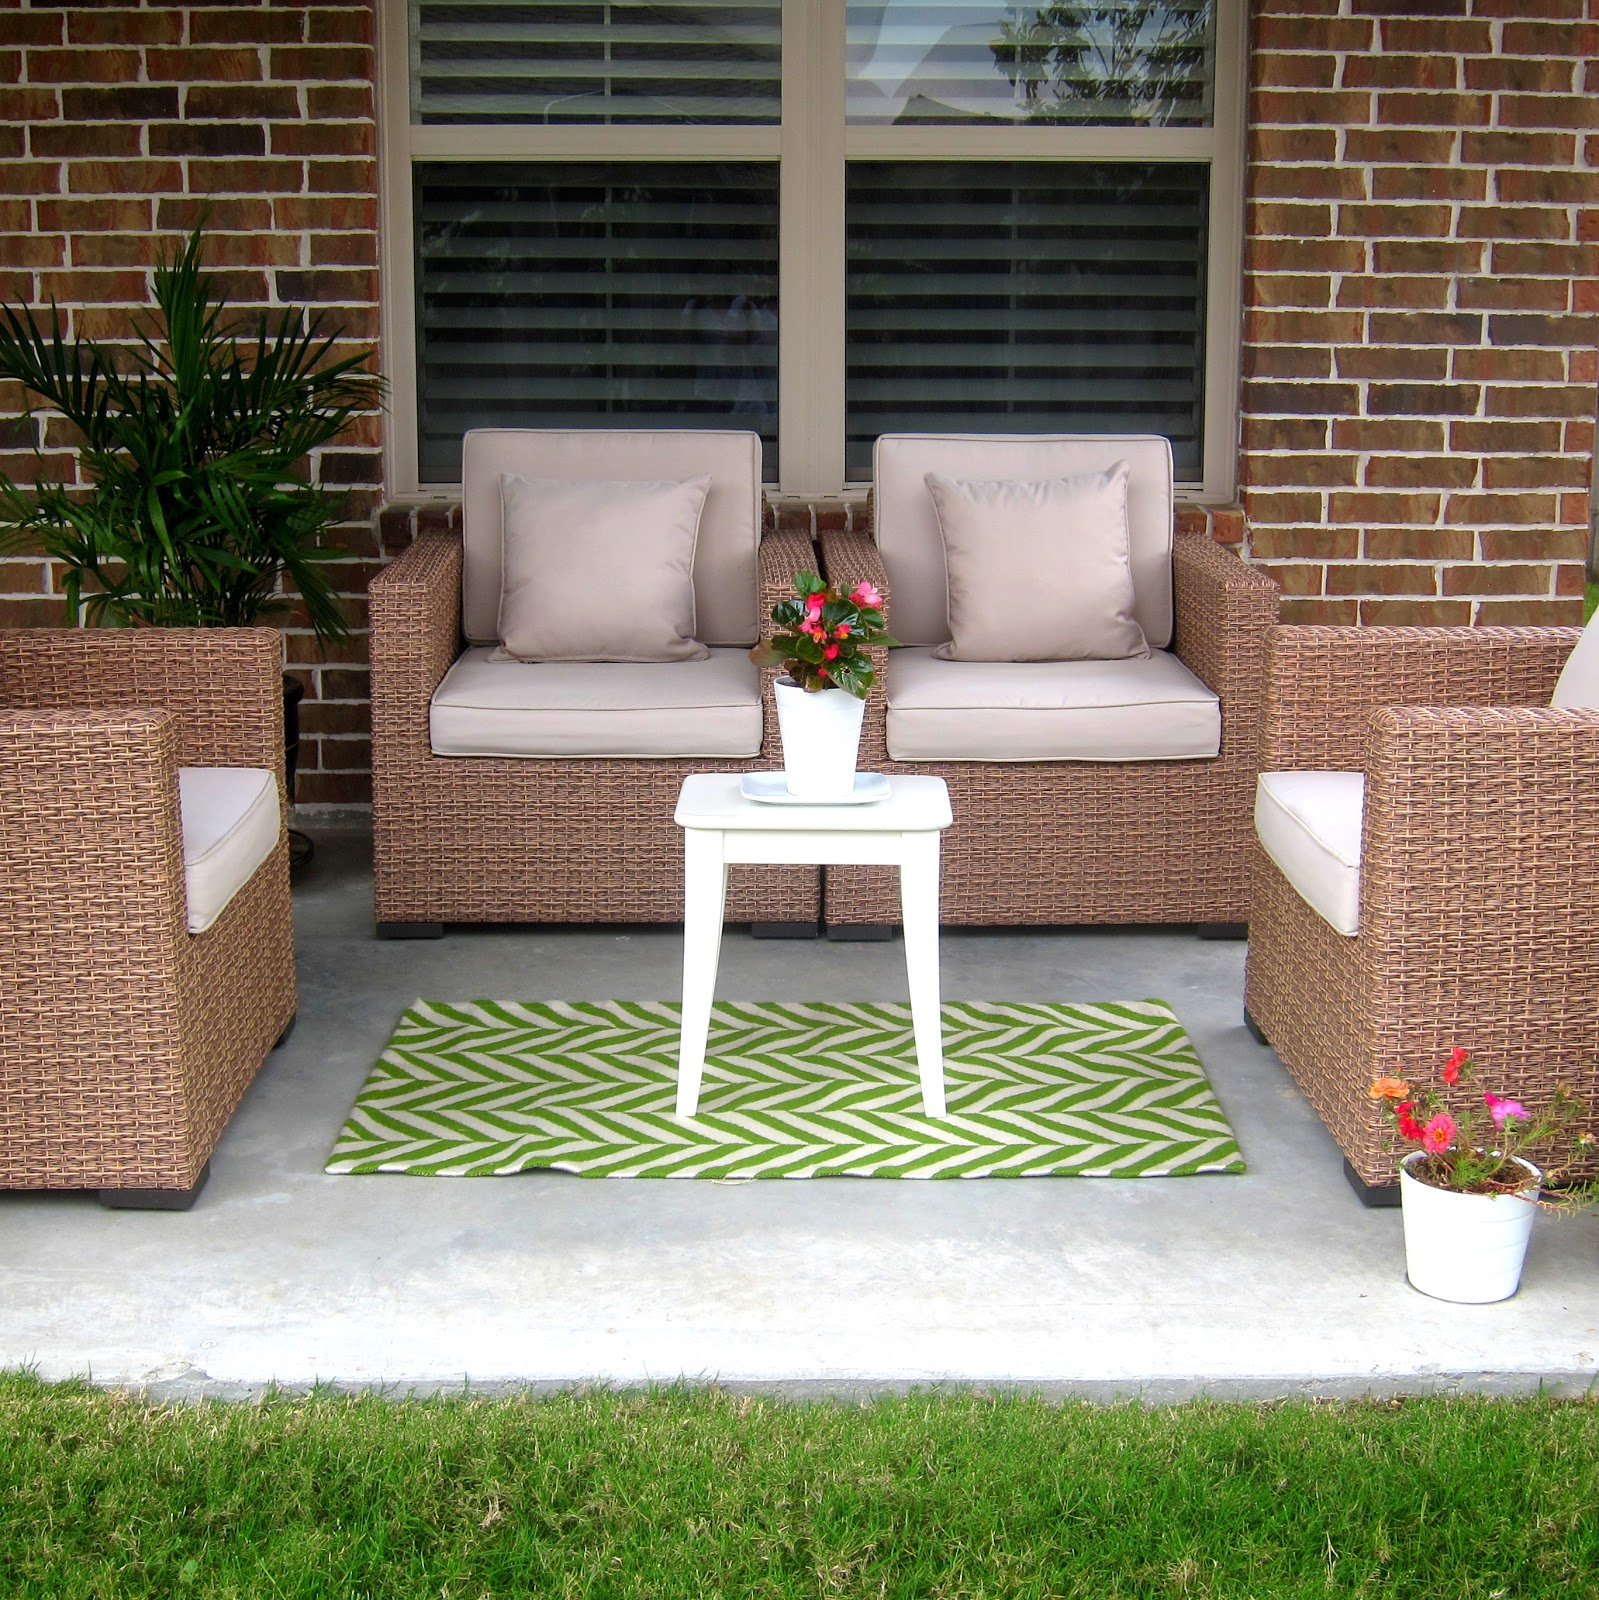 decor ideas patio rugs elegant wicker patio furniture with cushions and OKQENUV